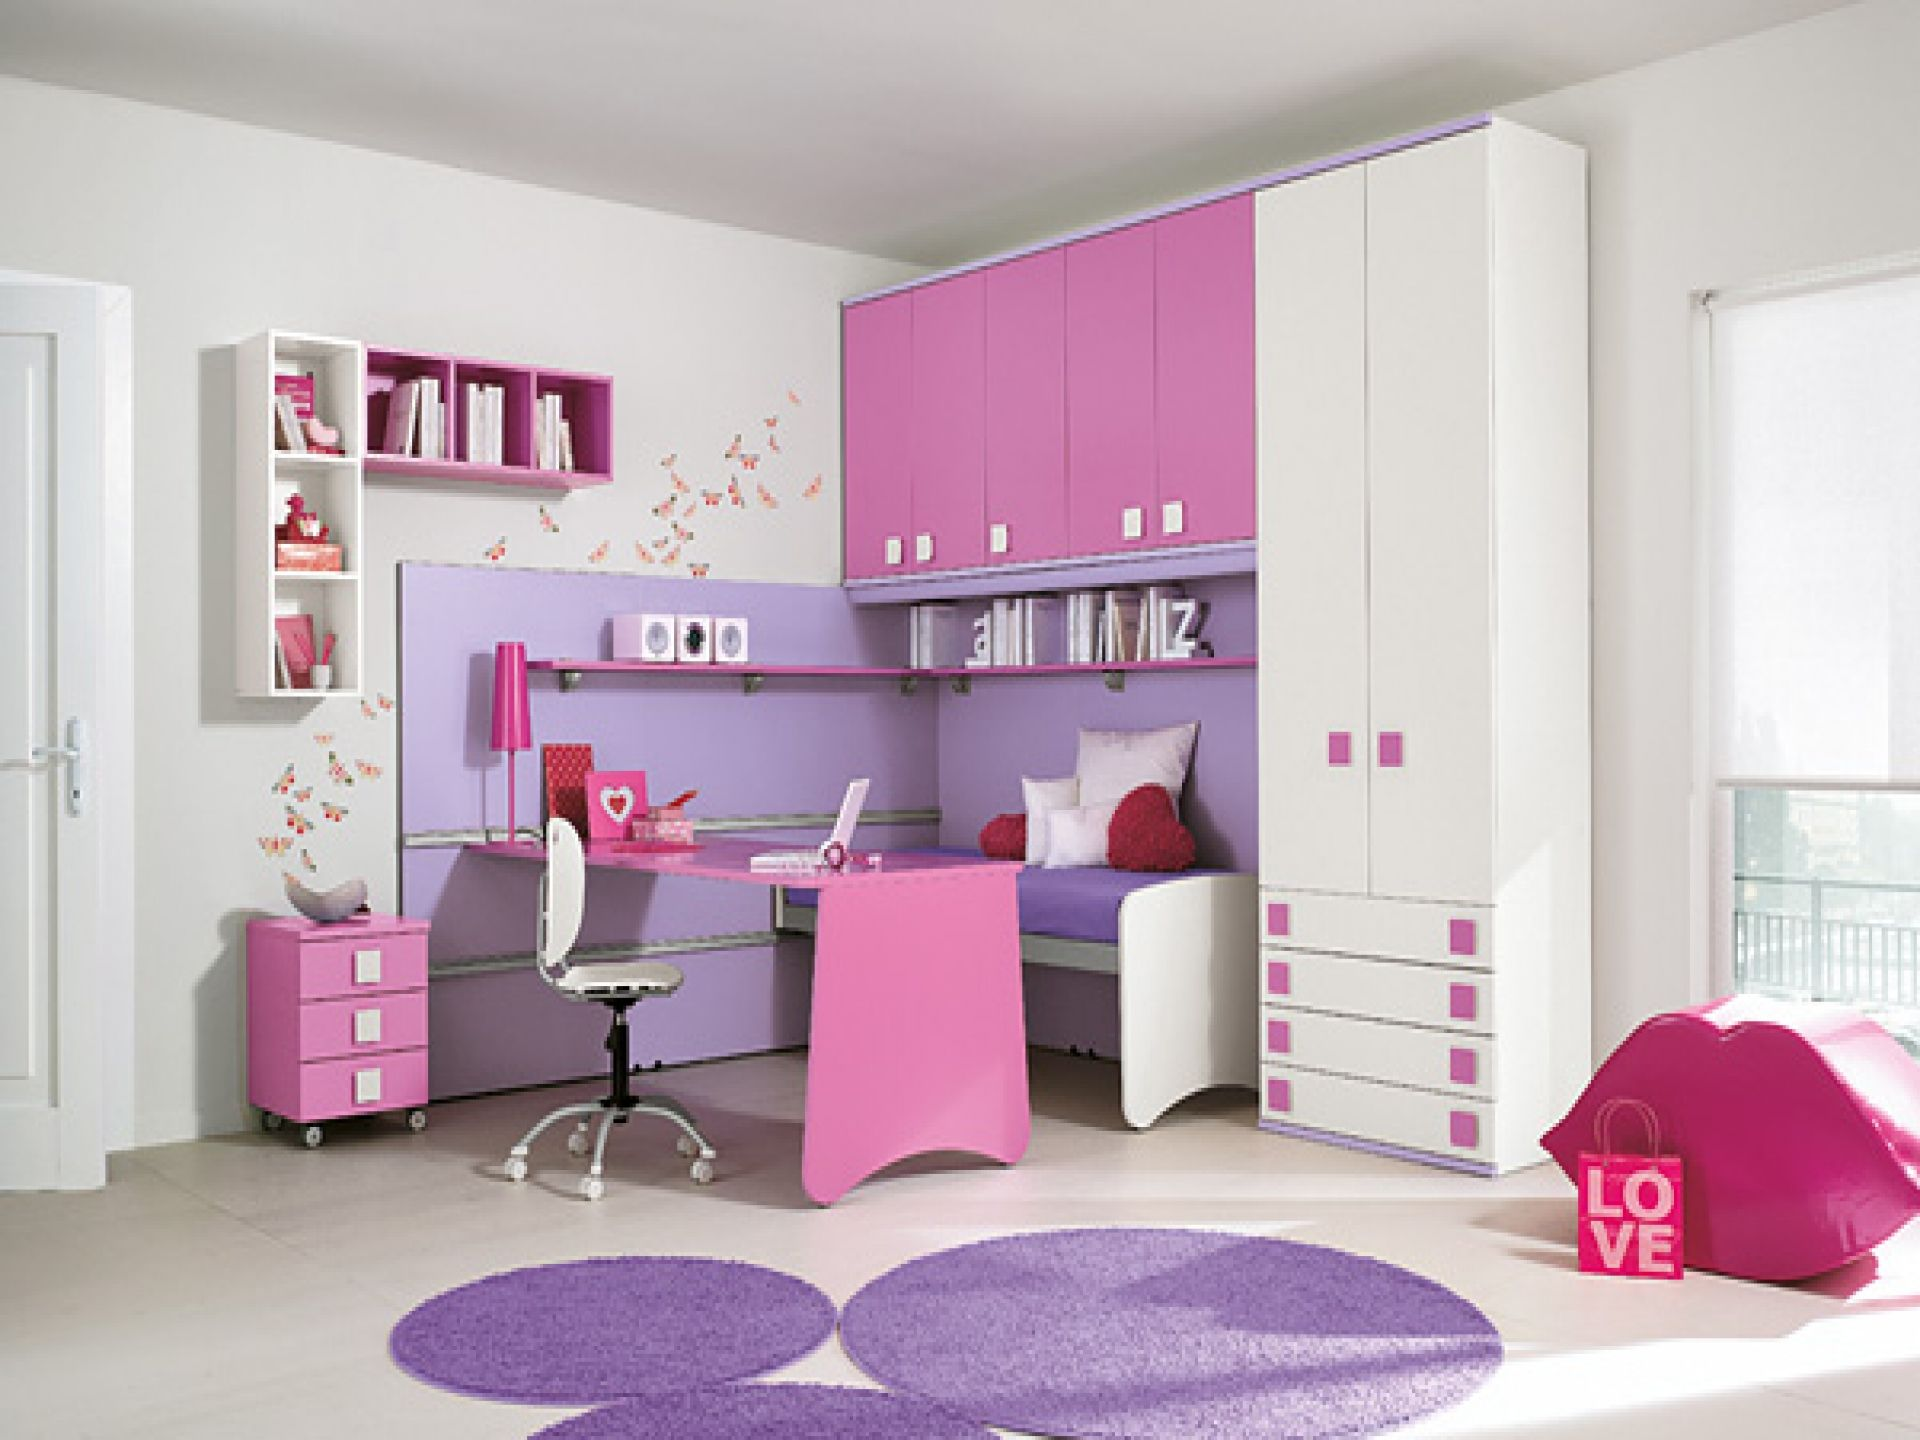 Fabulous Bedroom Designs In Pink And Purple Color Pink And